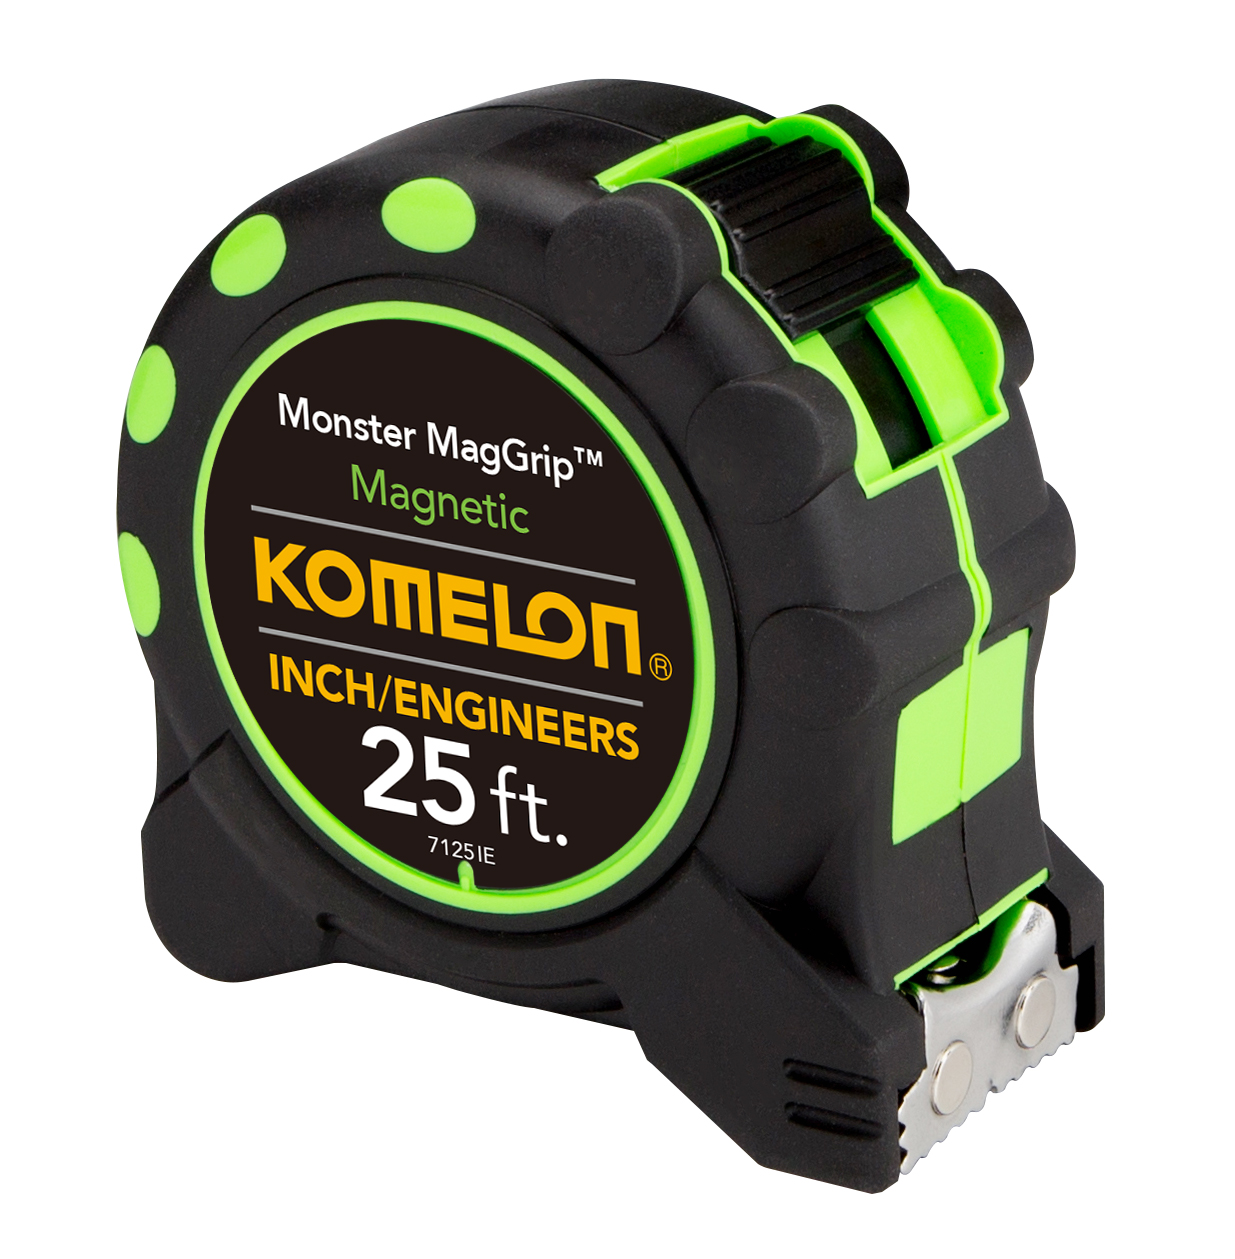 Komelon 25ft Monster MagGrip (Inch/Engineer) Tape Measure